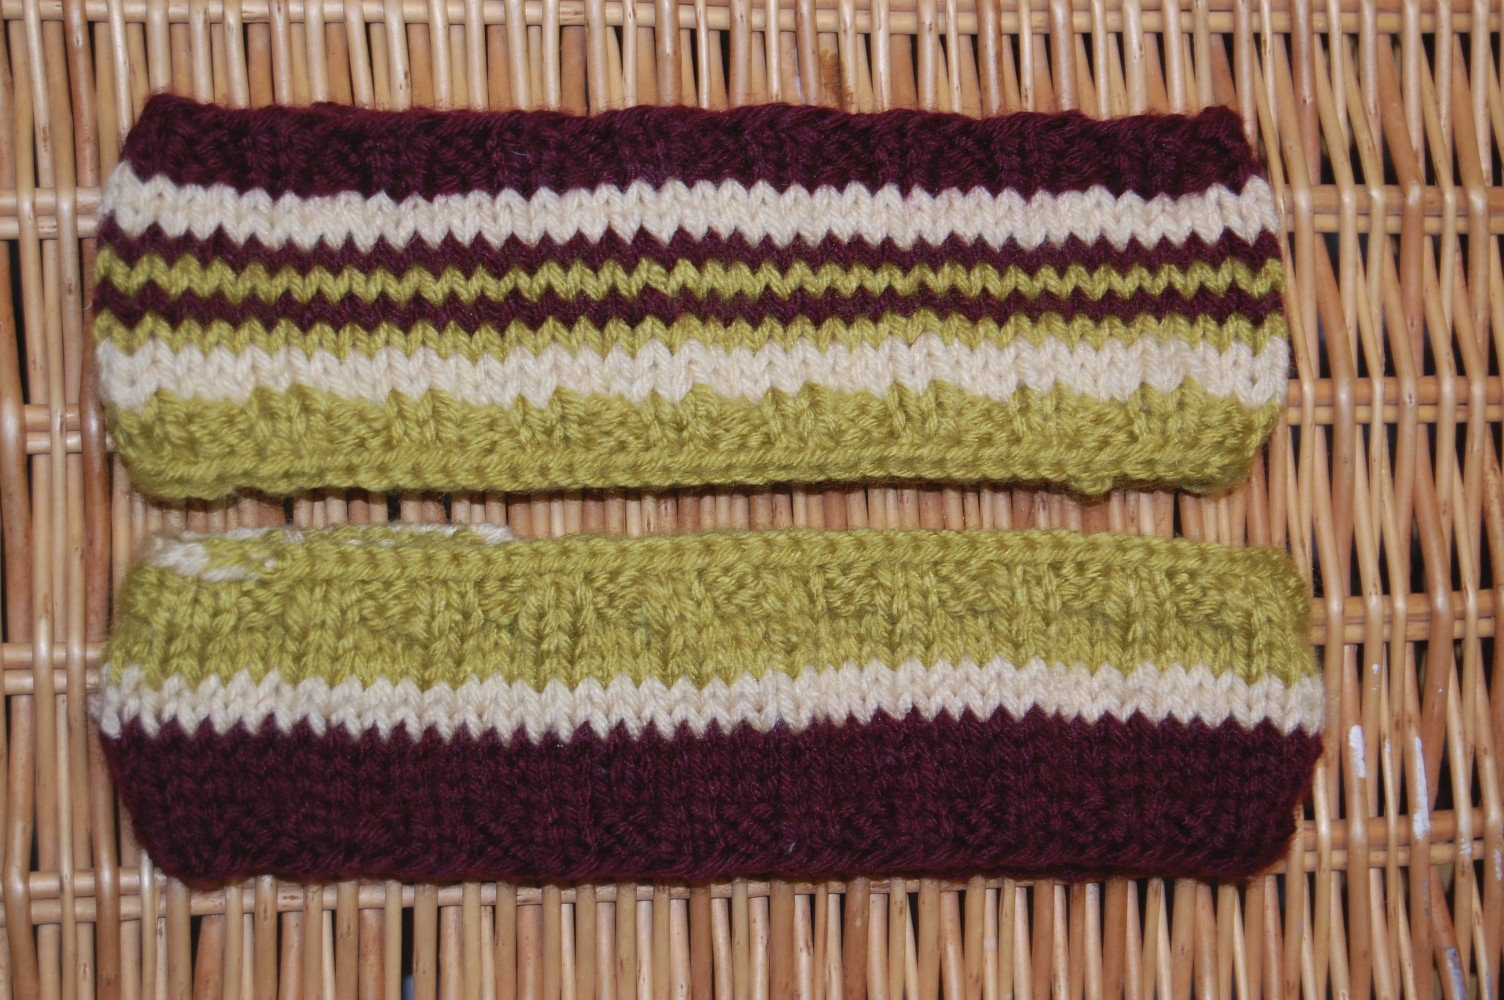 green and burgundy variety